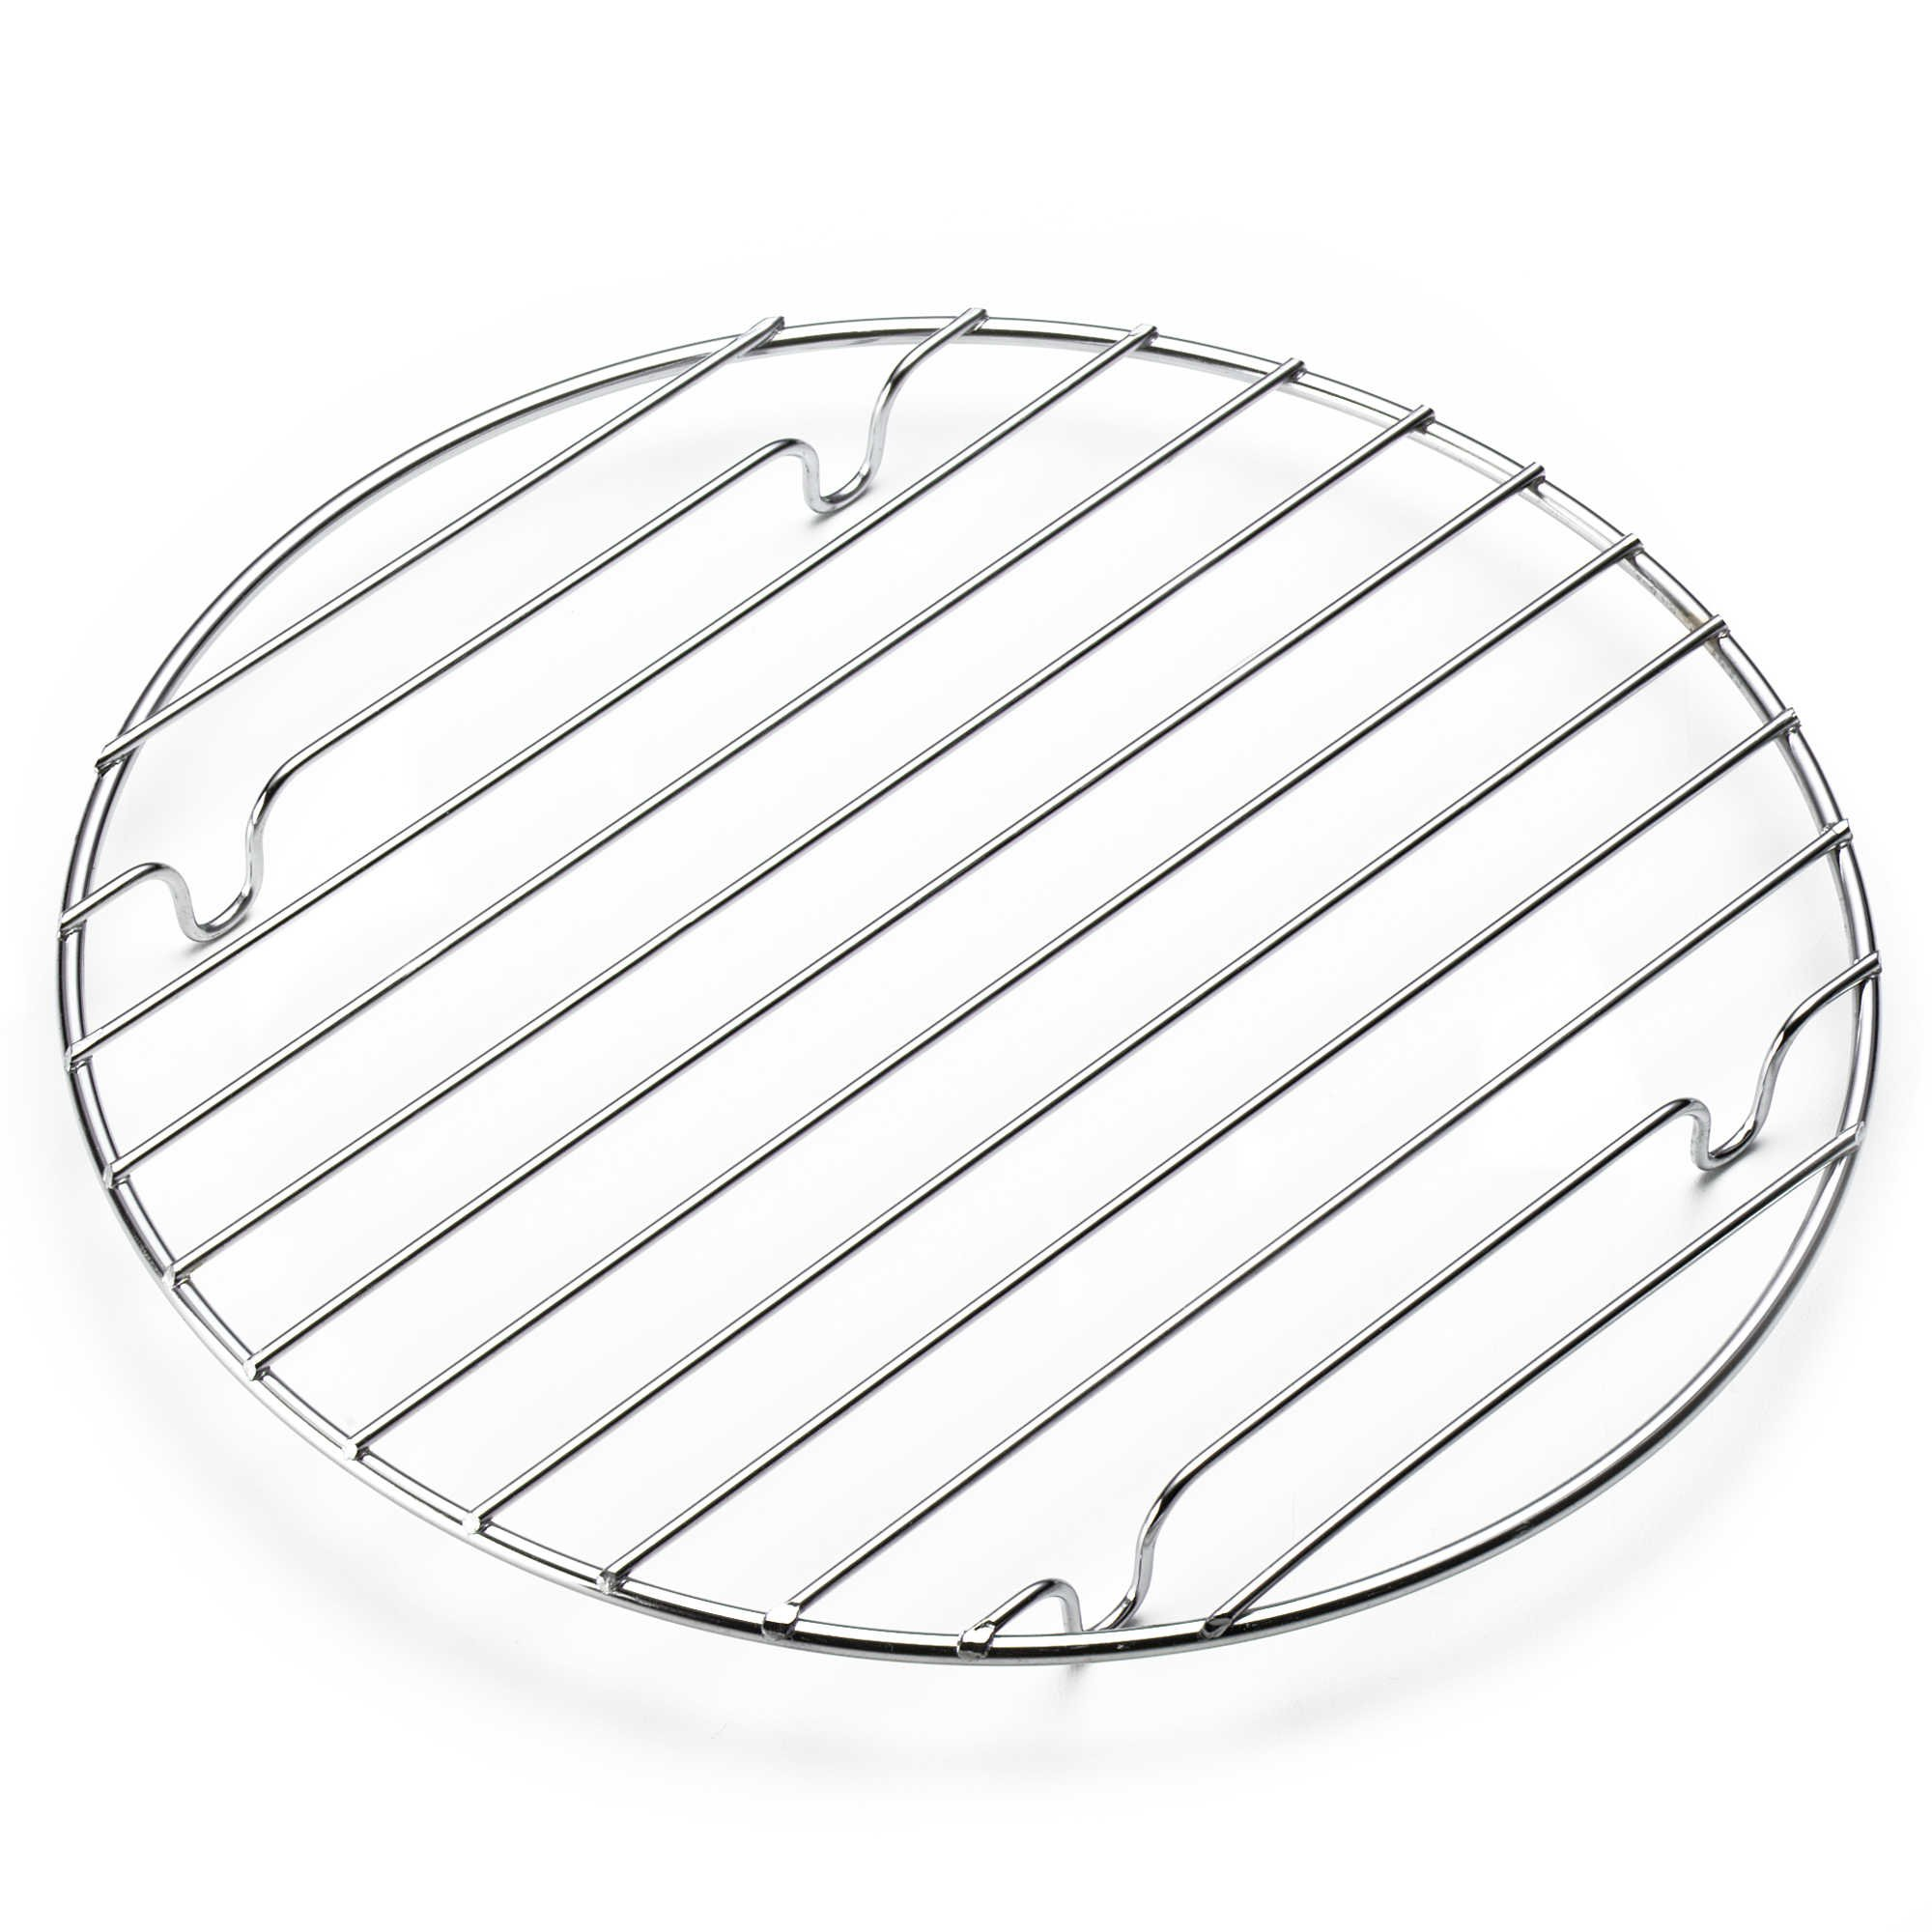 Round 9-Inch Cooling Rack